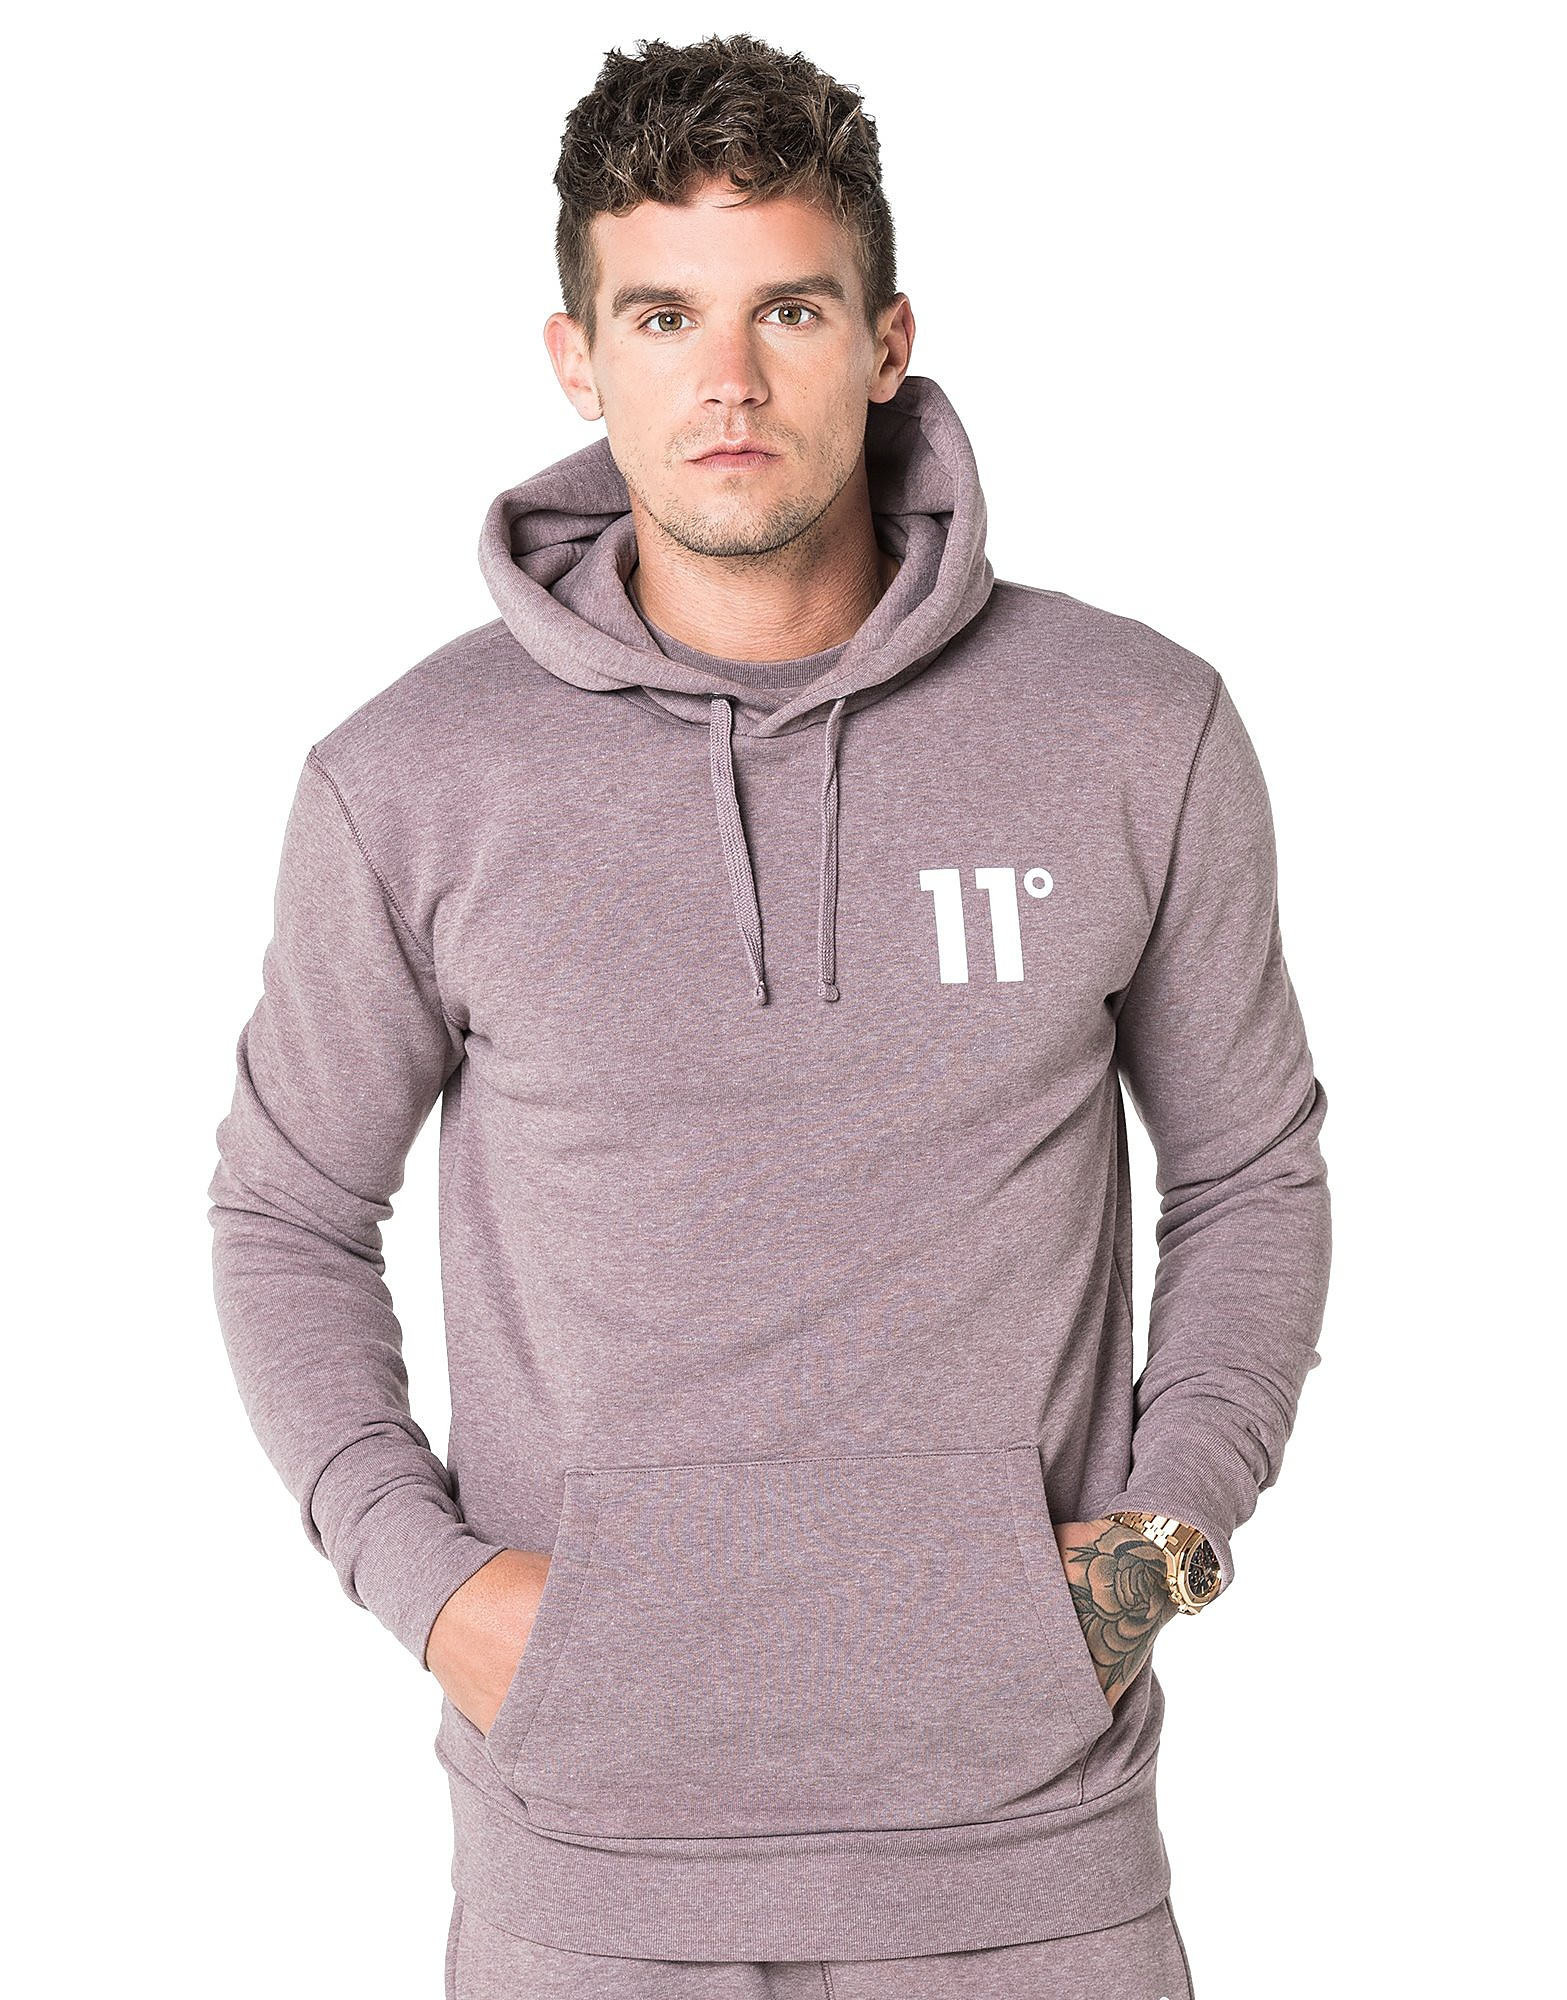 11 Degrees Core Fleece Overhead Hoody